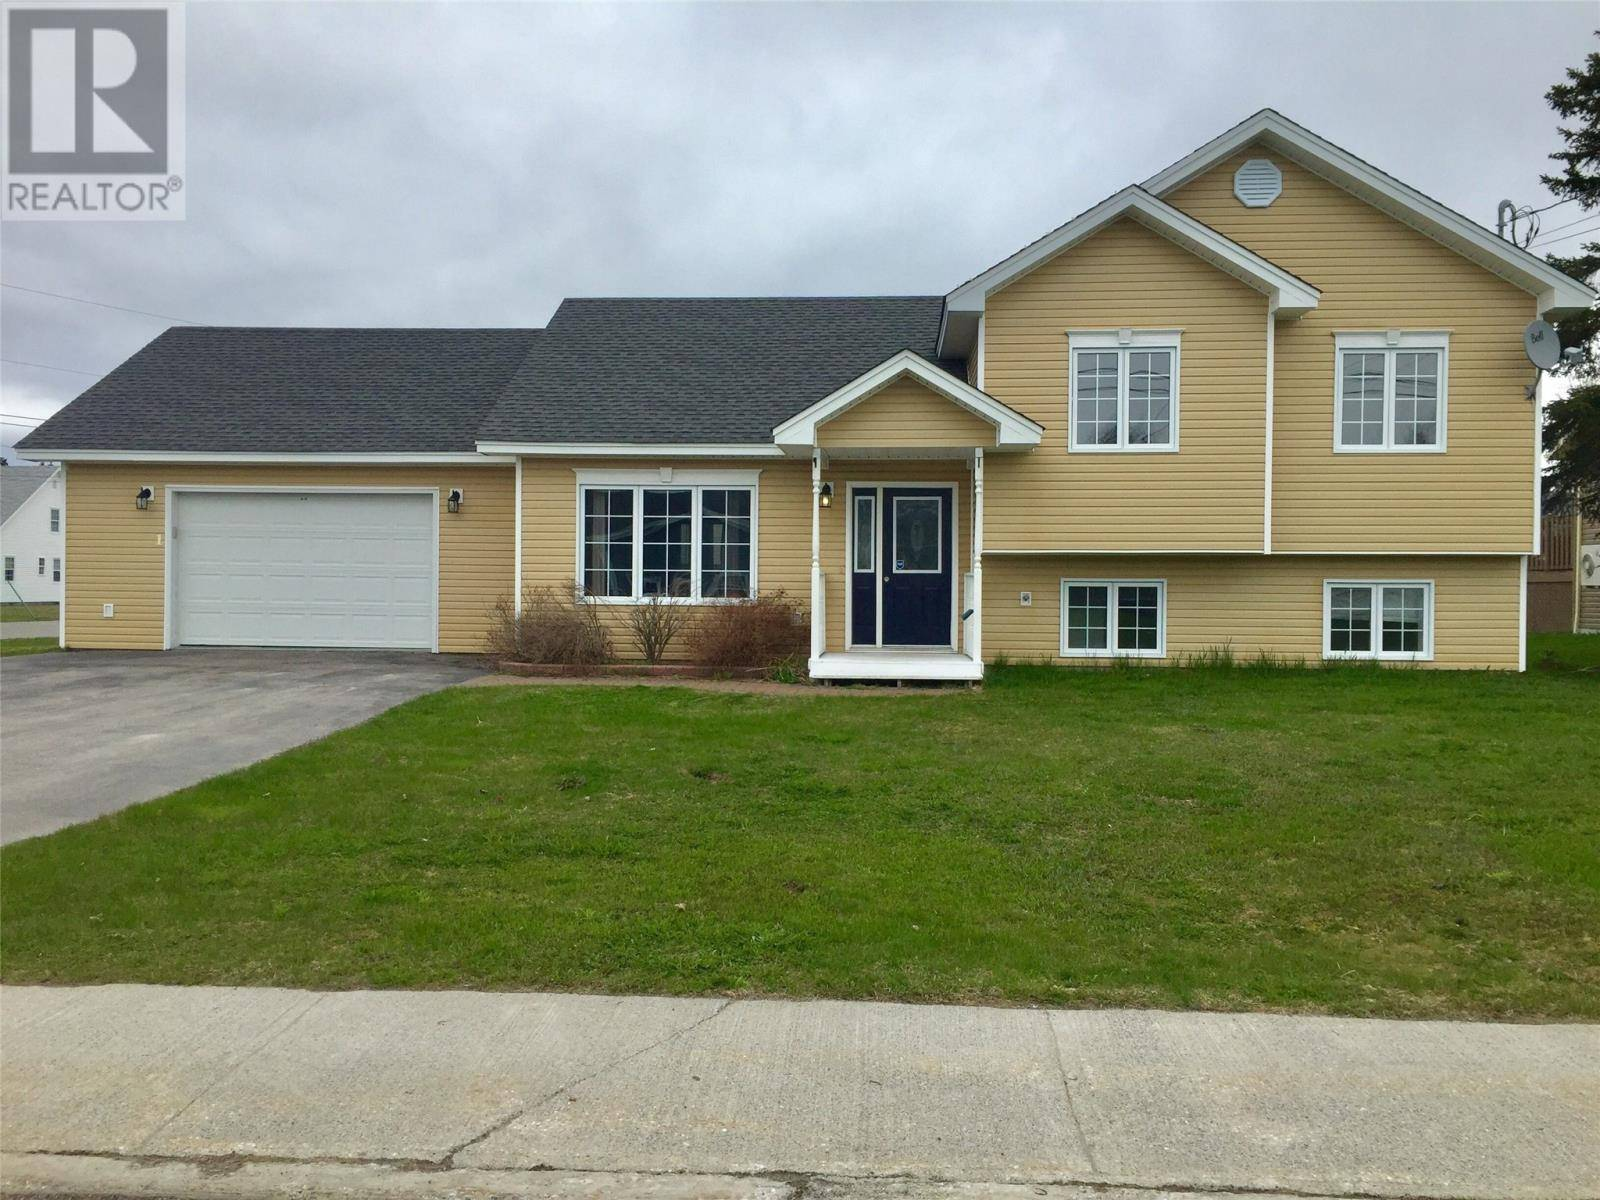 House for sale at 1 Foote St Pasadena Newfoundland - MLS: 1196536